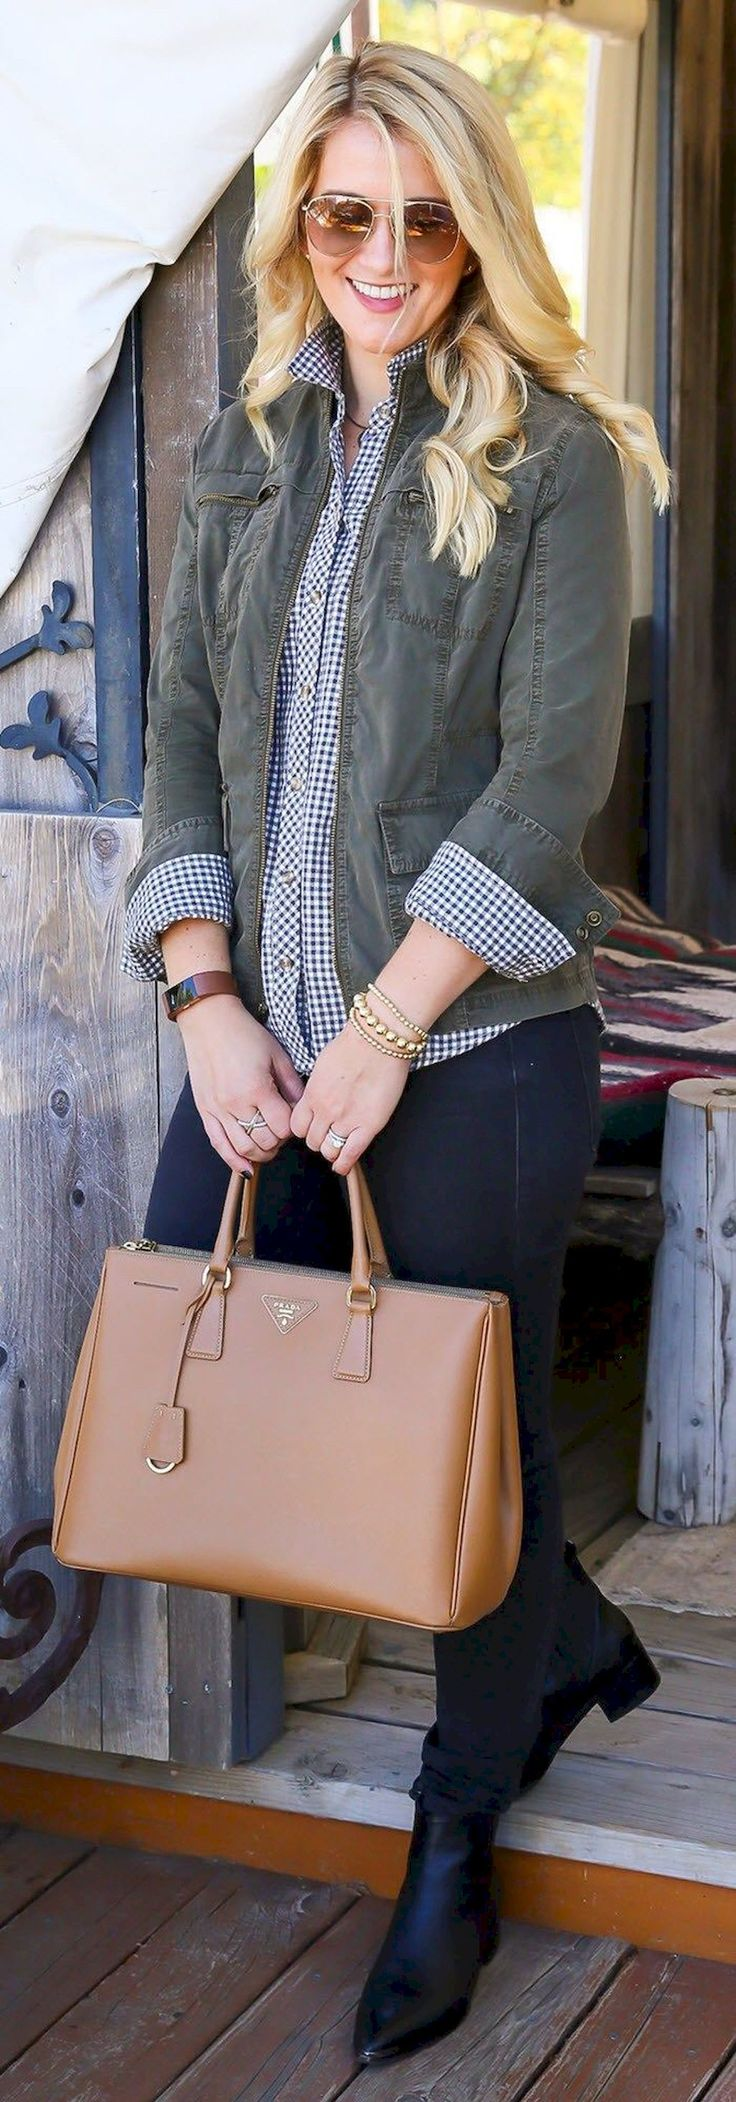 Adorable 53 Best Daily Outfit to Wear Flanel Shirt For Woman  #Best #Daily #Flanel #Outfit #Shirt #Wear #Woman